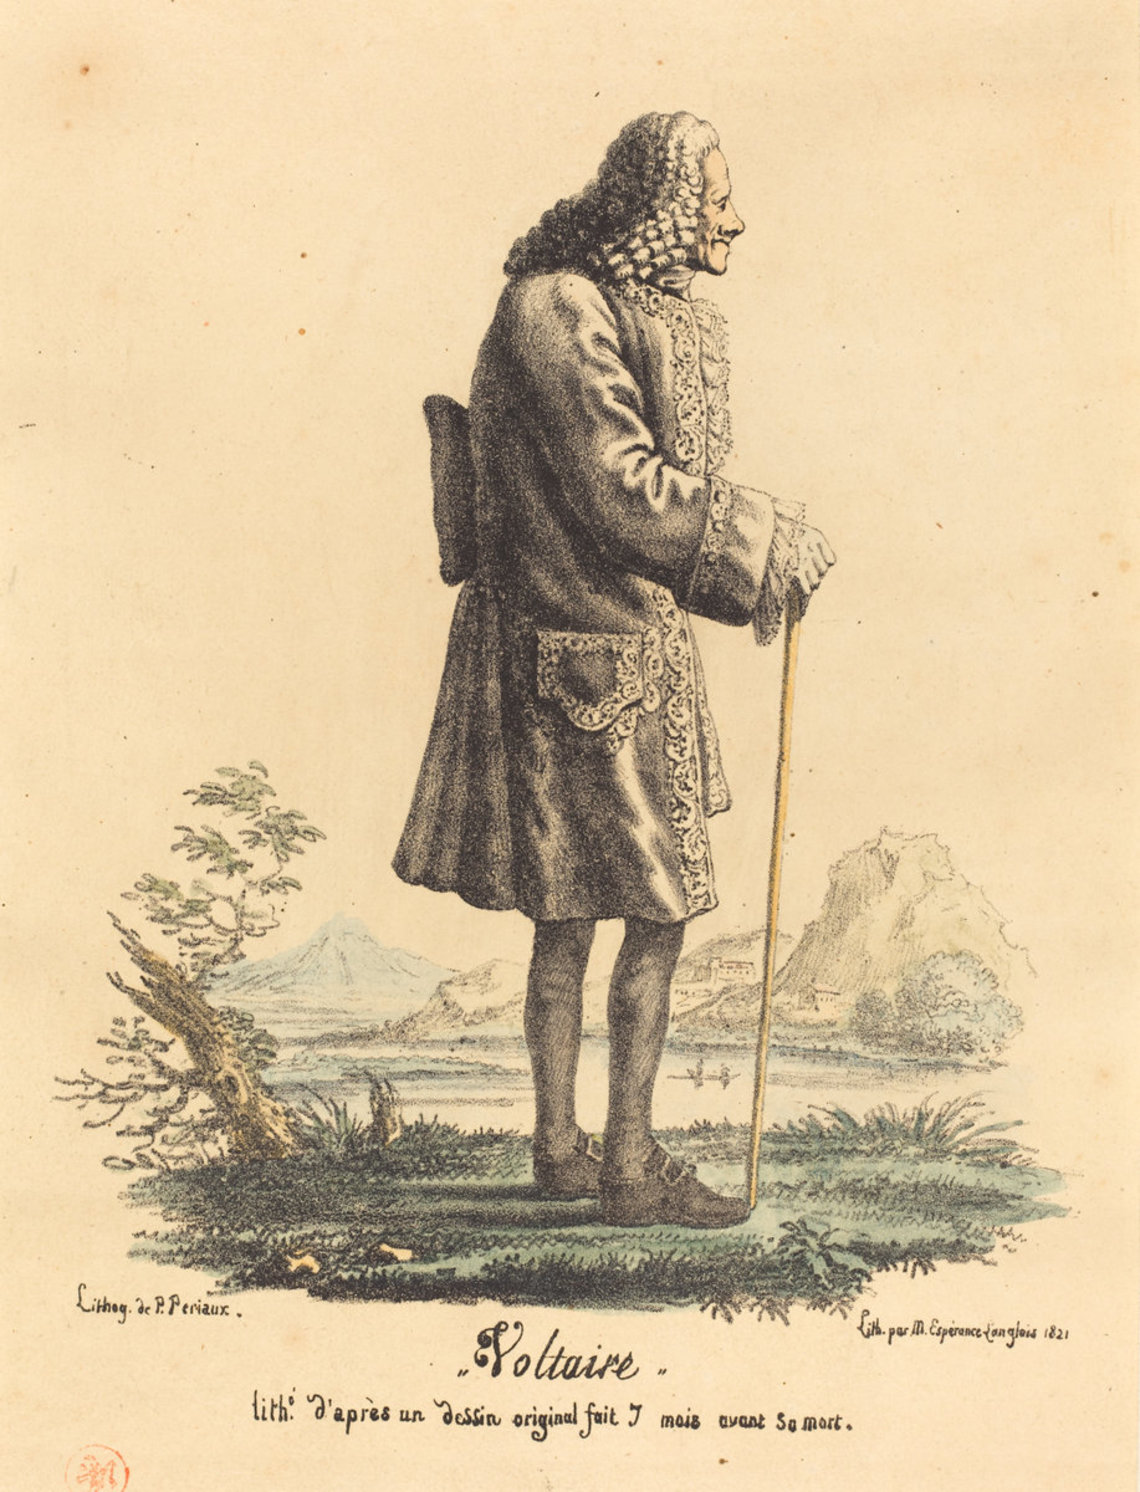 A 1821 print depicting the writer Voltaire.